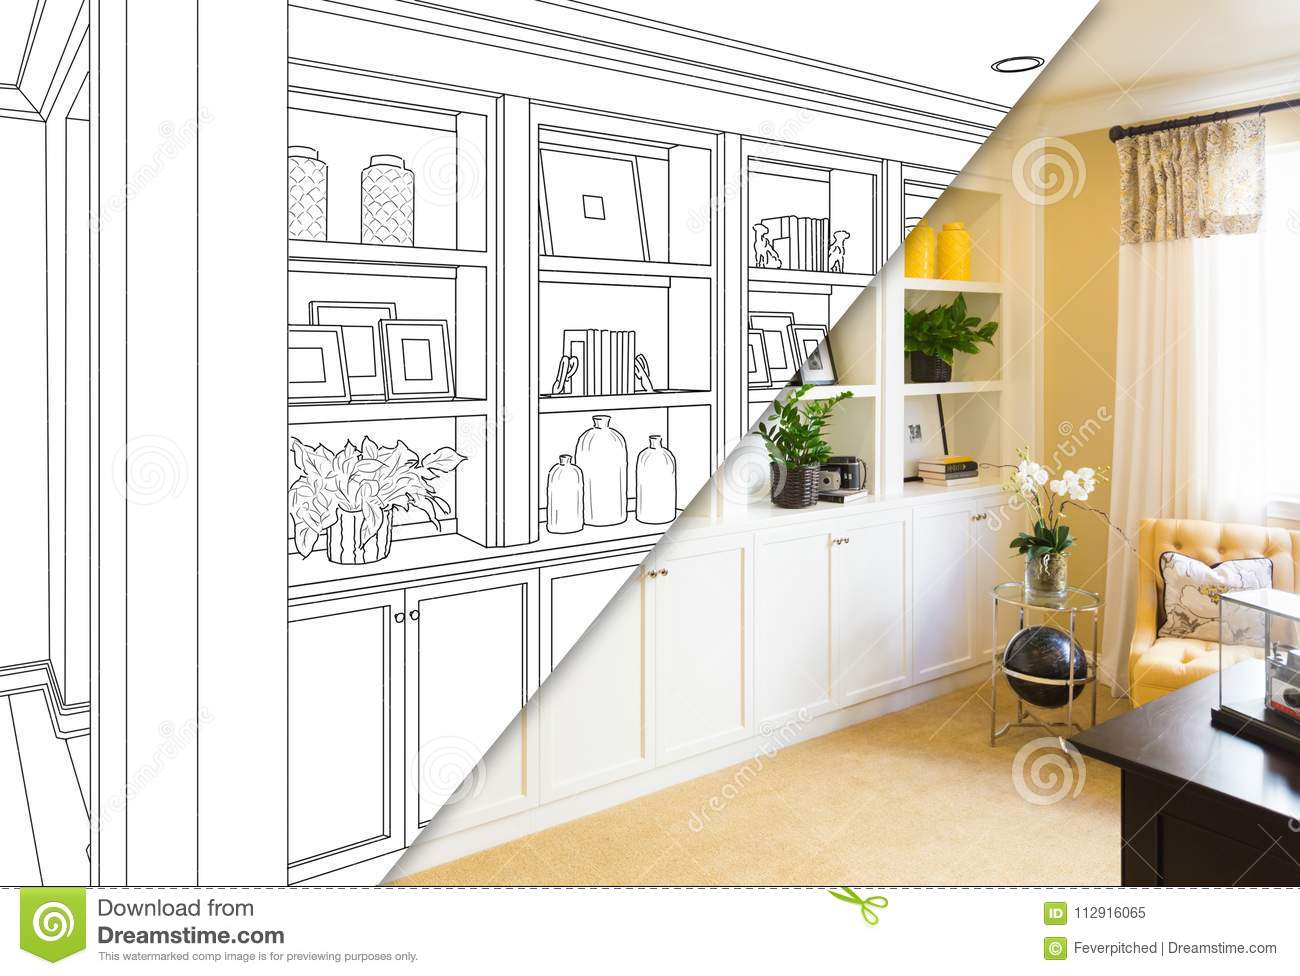 Custom Built-in Shelves and Cabinets Design Drawing Sketch